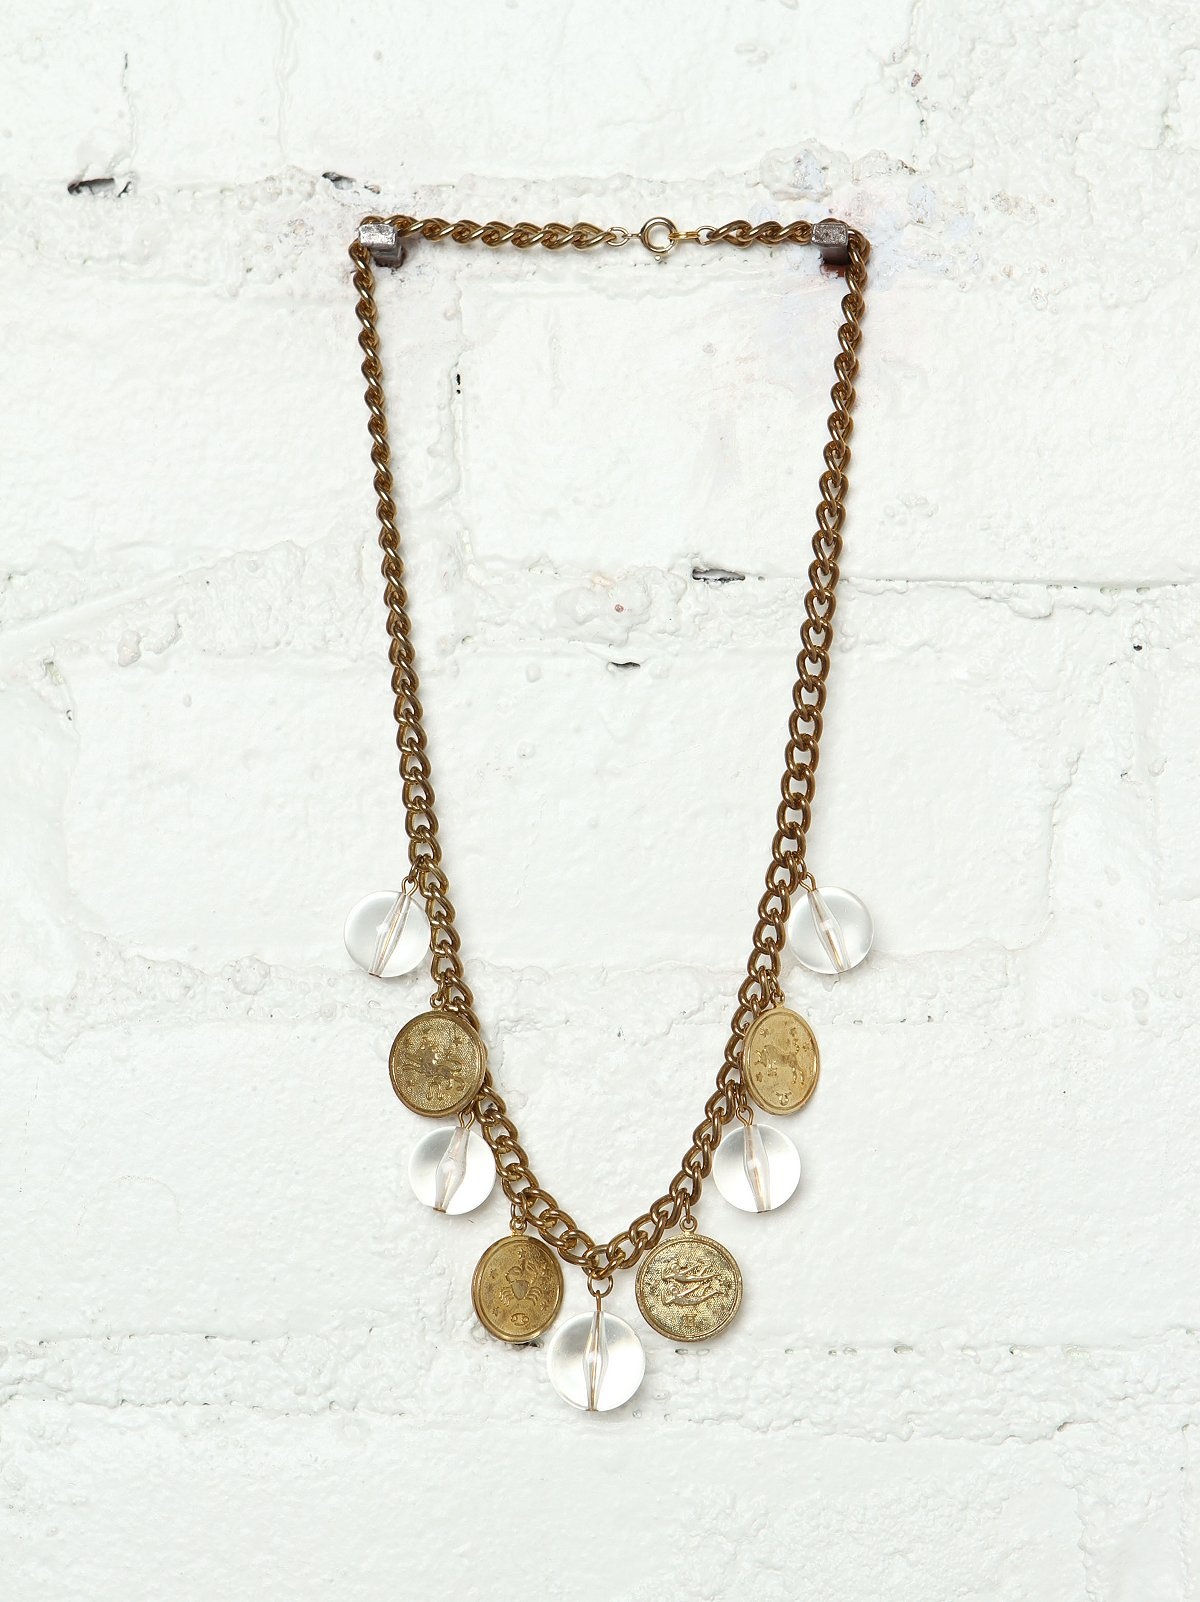 Vintage 1980s Coin Necklace